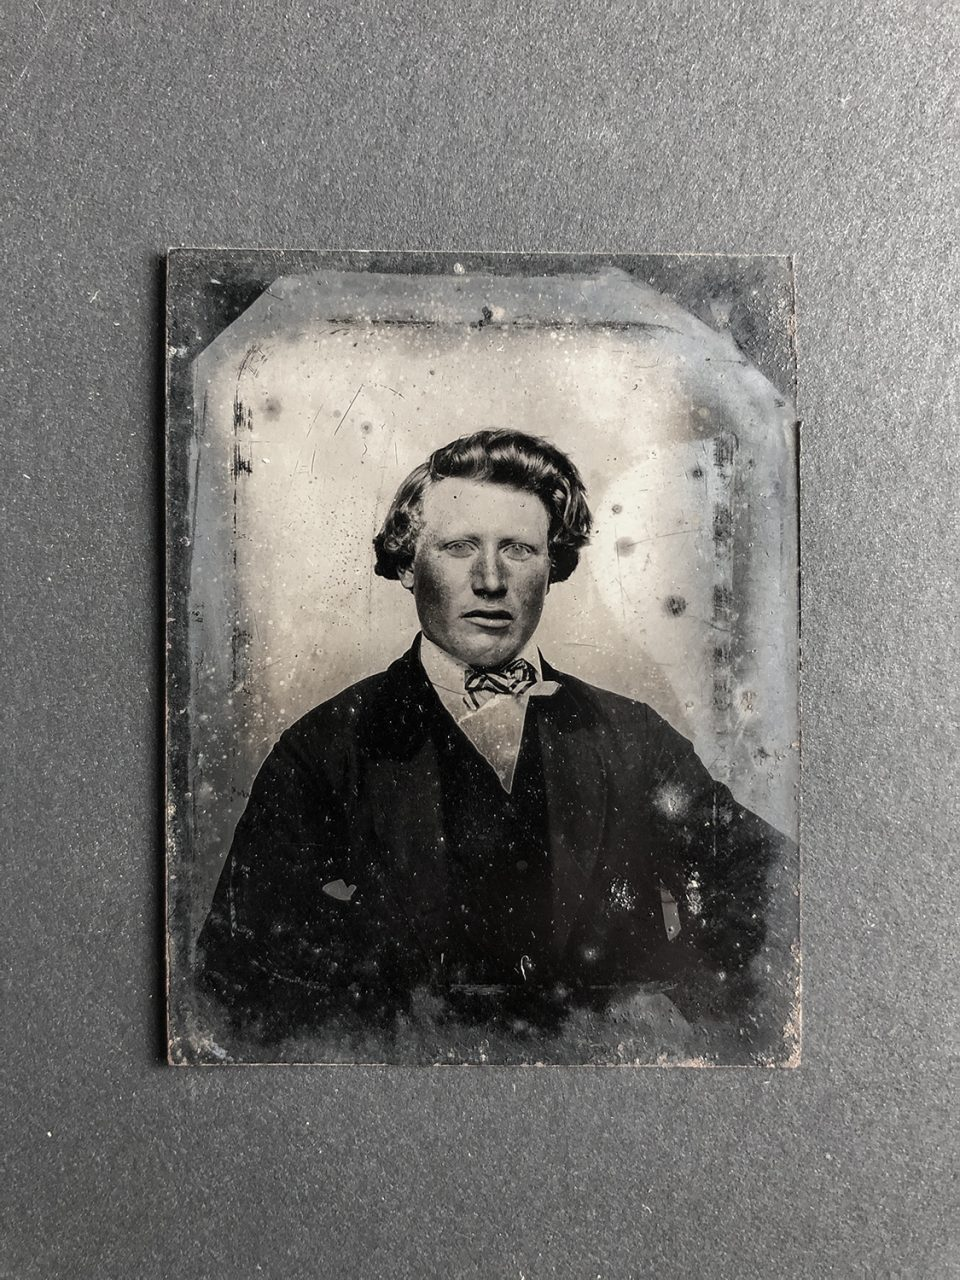 Tintype portrait of a young man, probably circa late 1850s or early 1860s (based on his hairstyle and clothing). The print displays signs of corrosion. Keep in mind that tintypes were unique originals, meaning there was no negative. This is the only version of this photograph in existence.